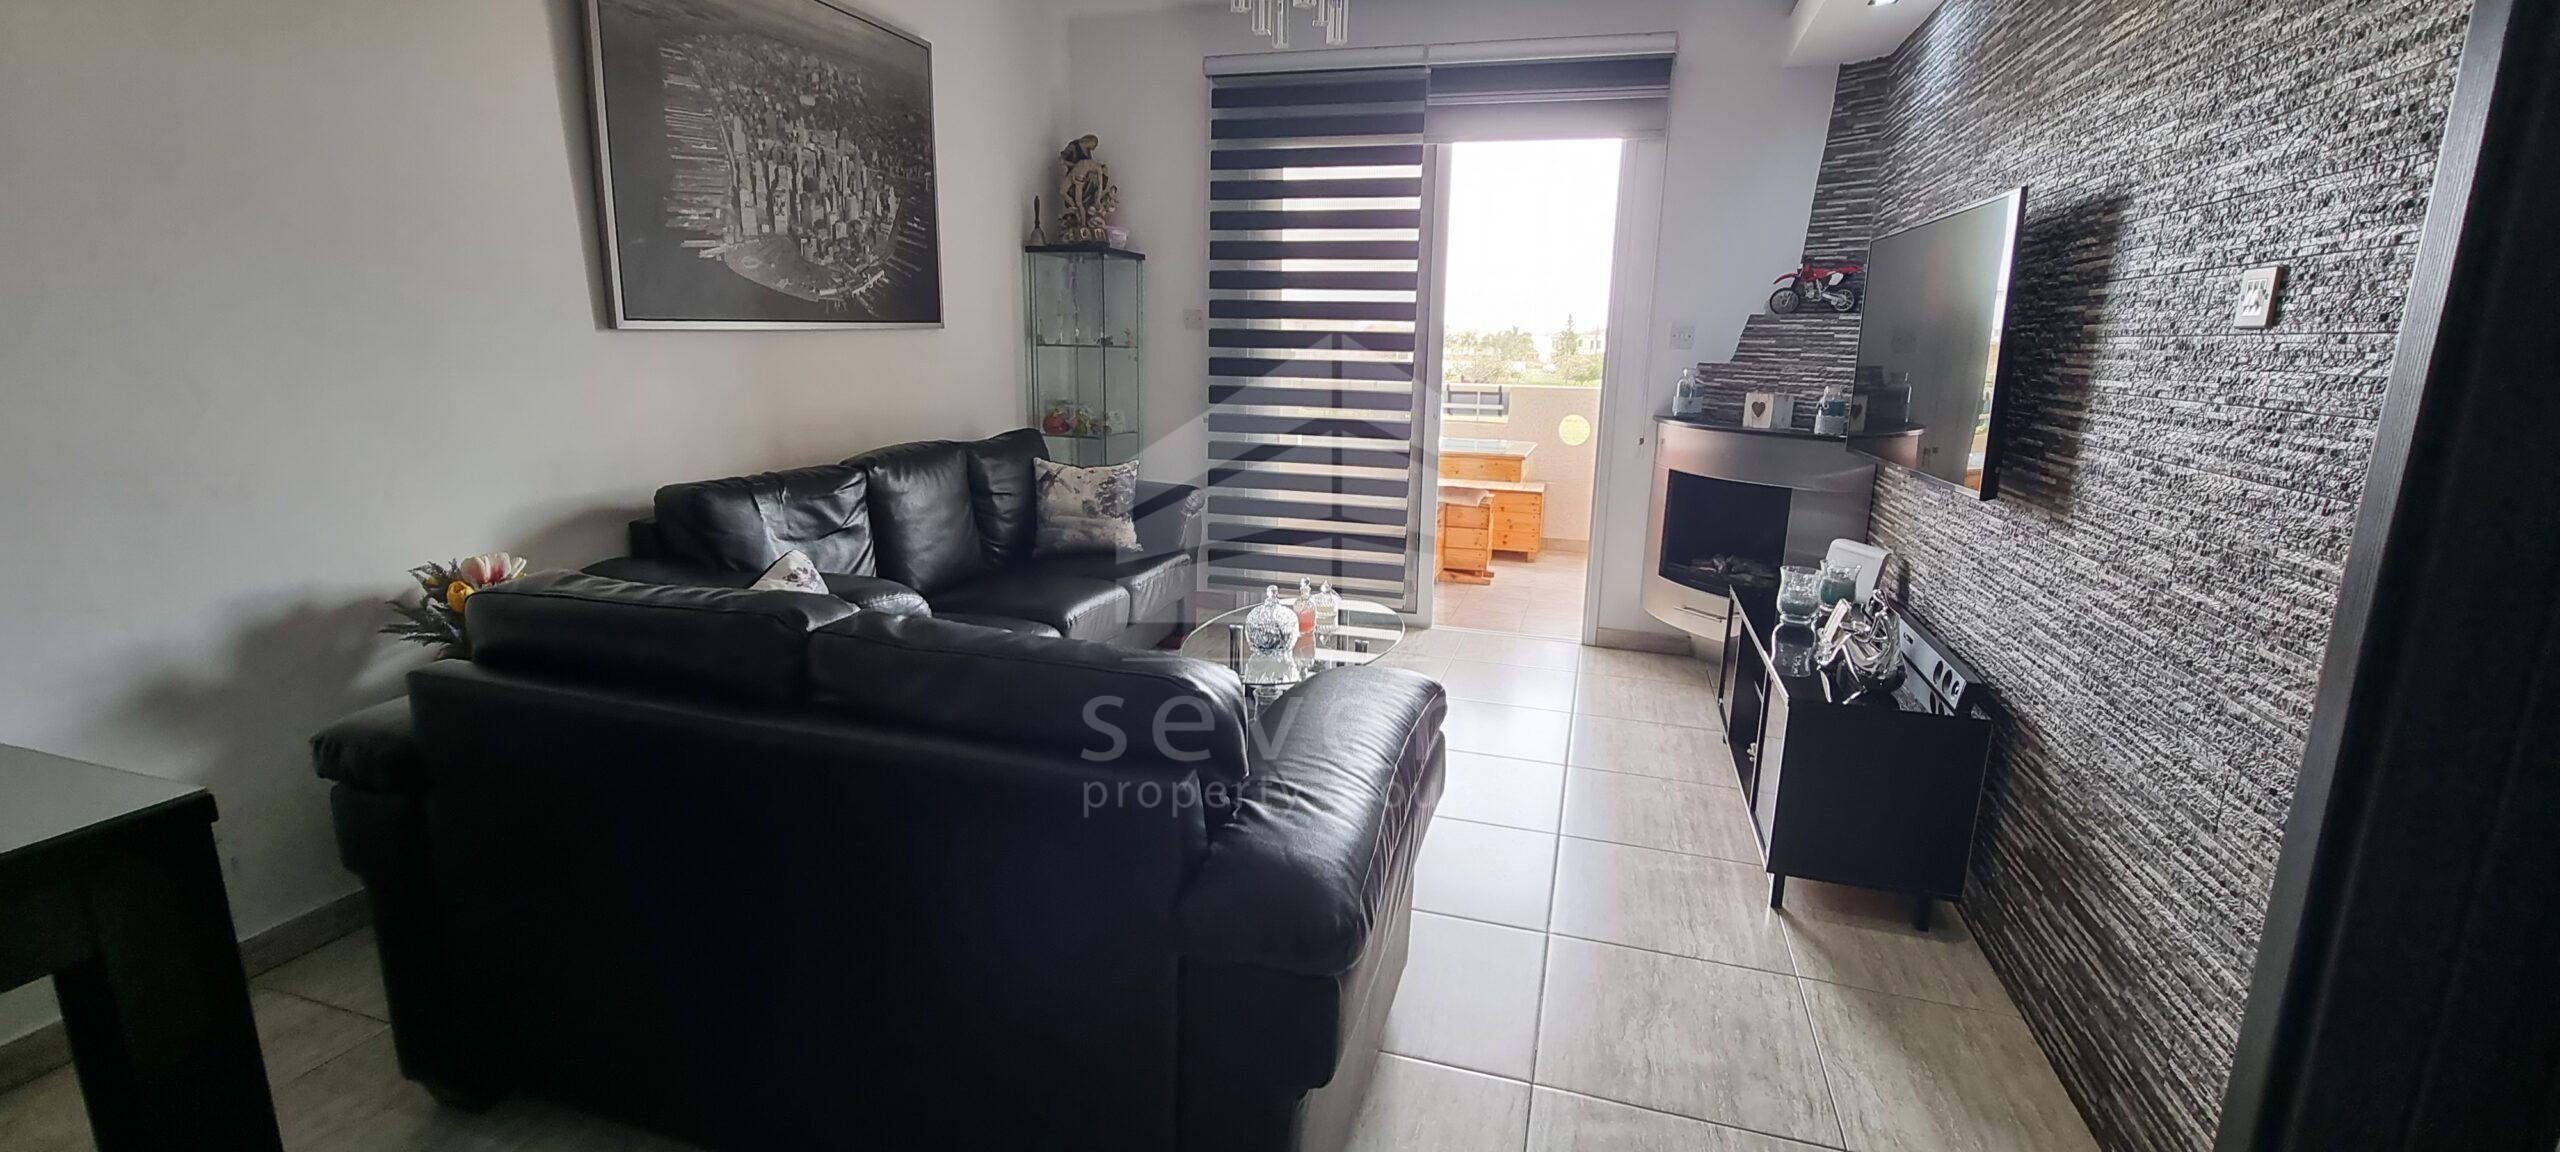 3 BED APARTMENT FOR SALE IN LIVADIA